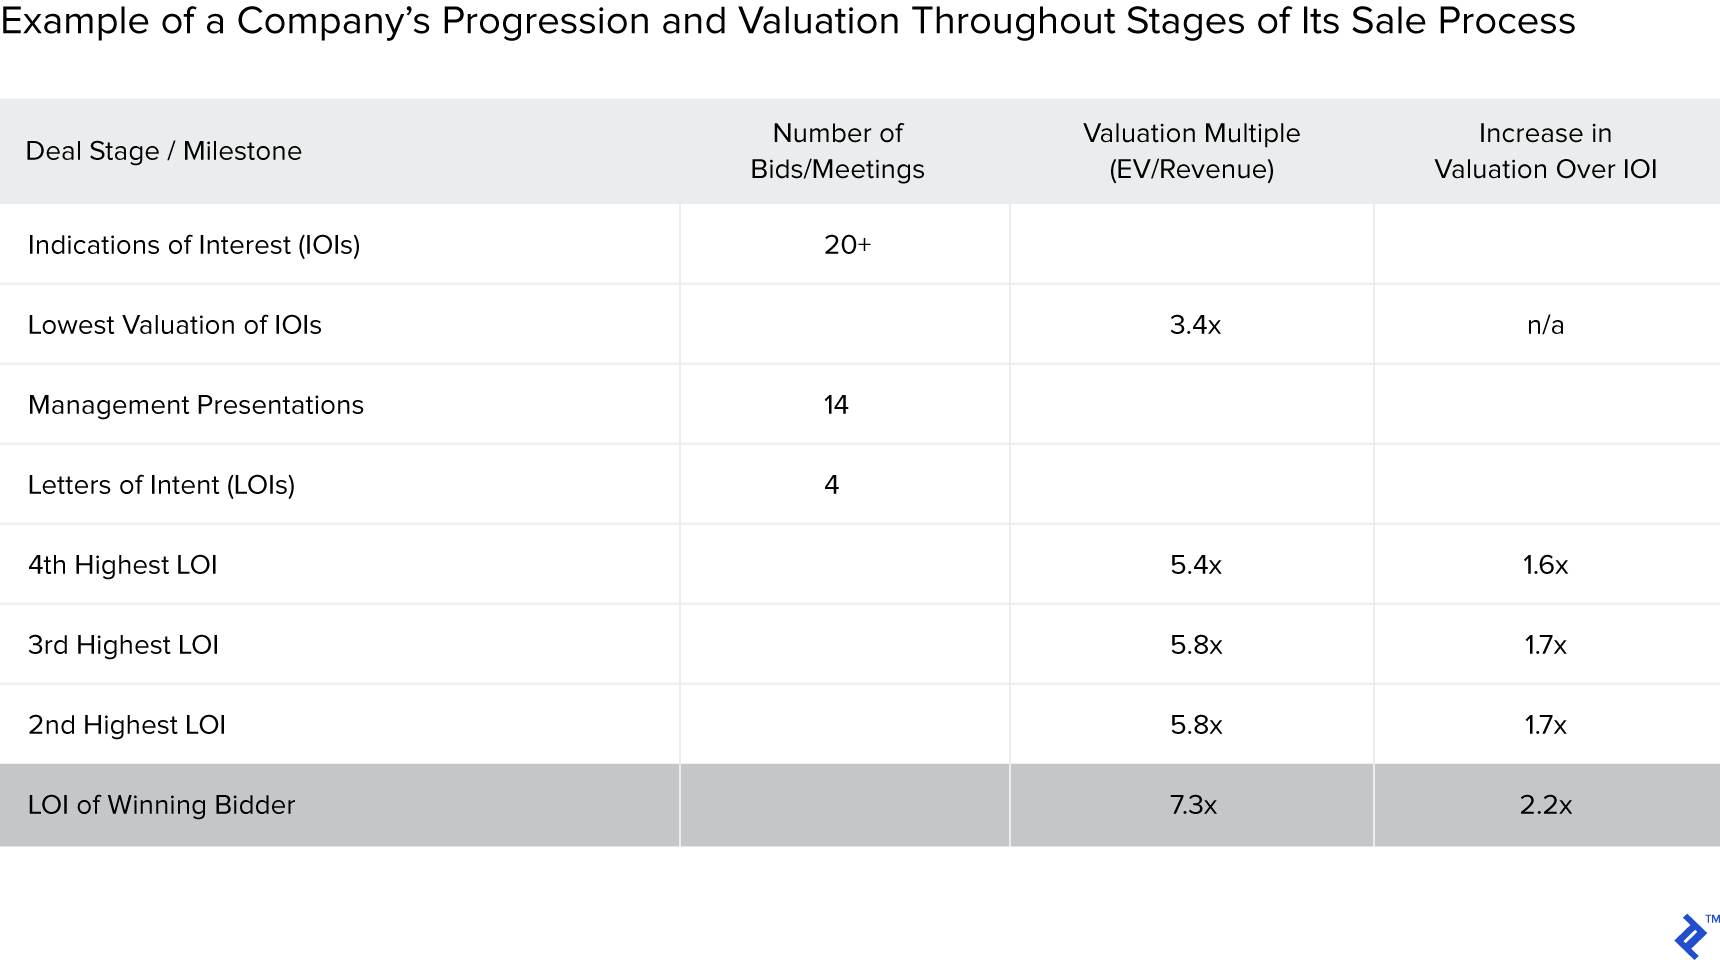 Example of a company's progression and valuation throughout stages of its sale process